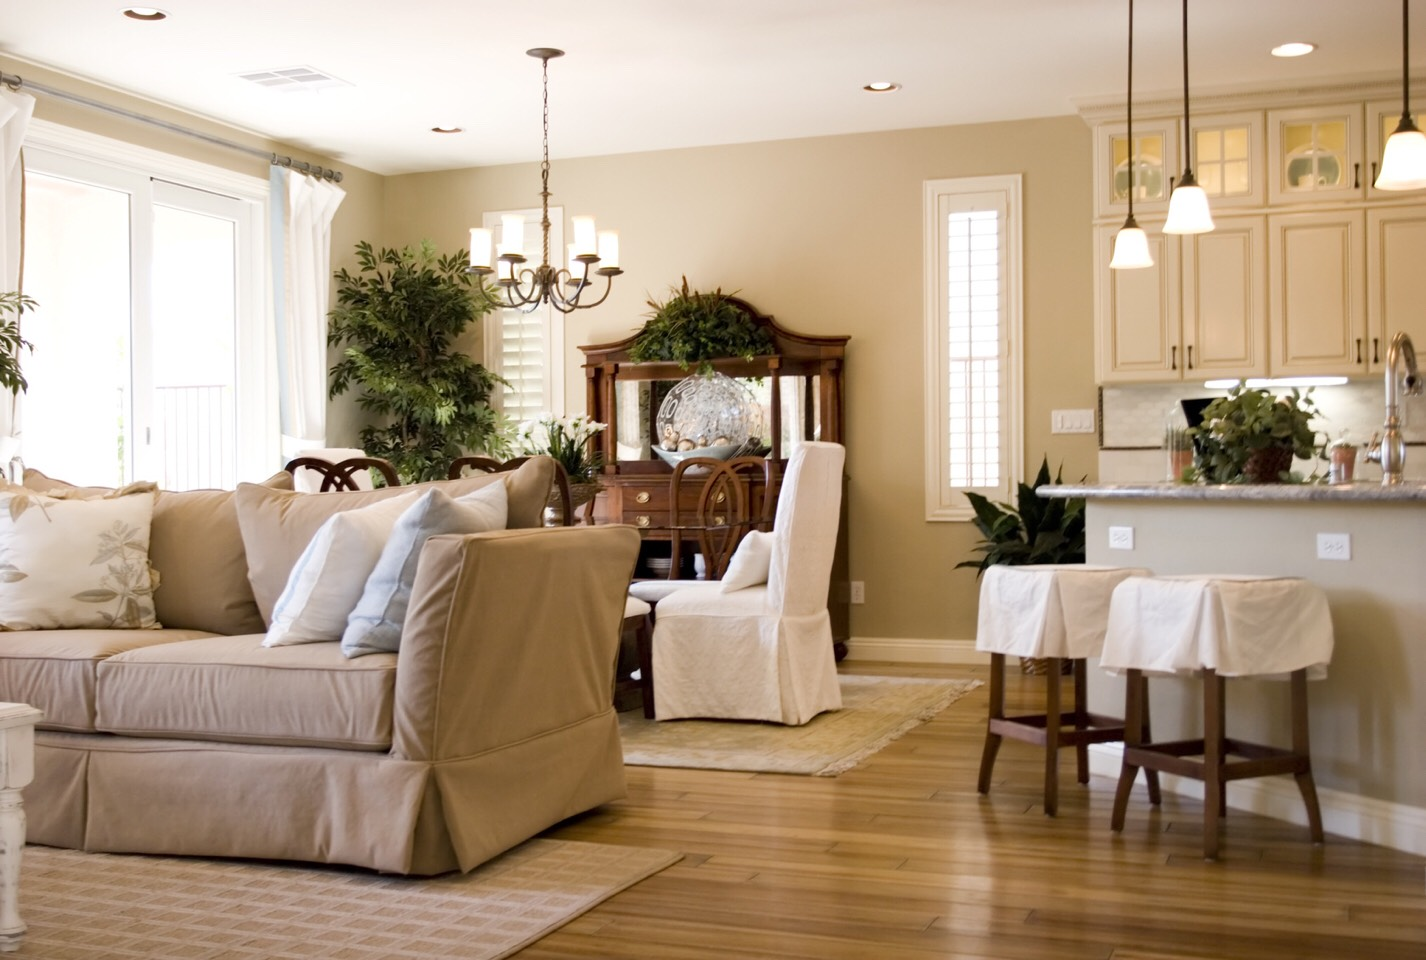 Learn how to keep your house clean so that it isn't so overwhelming and stressful.